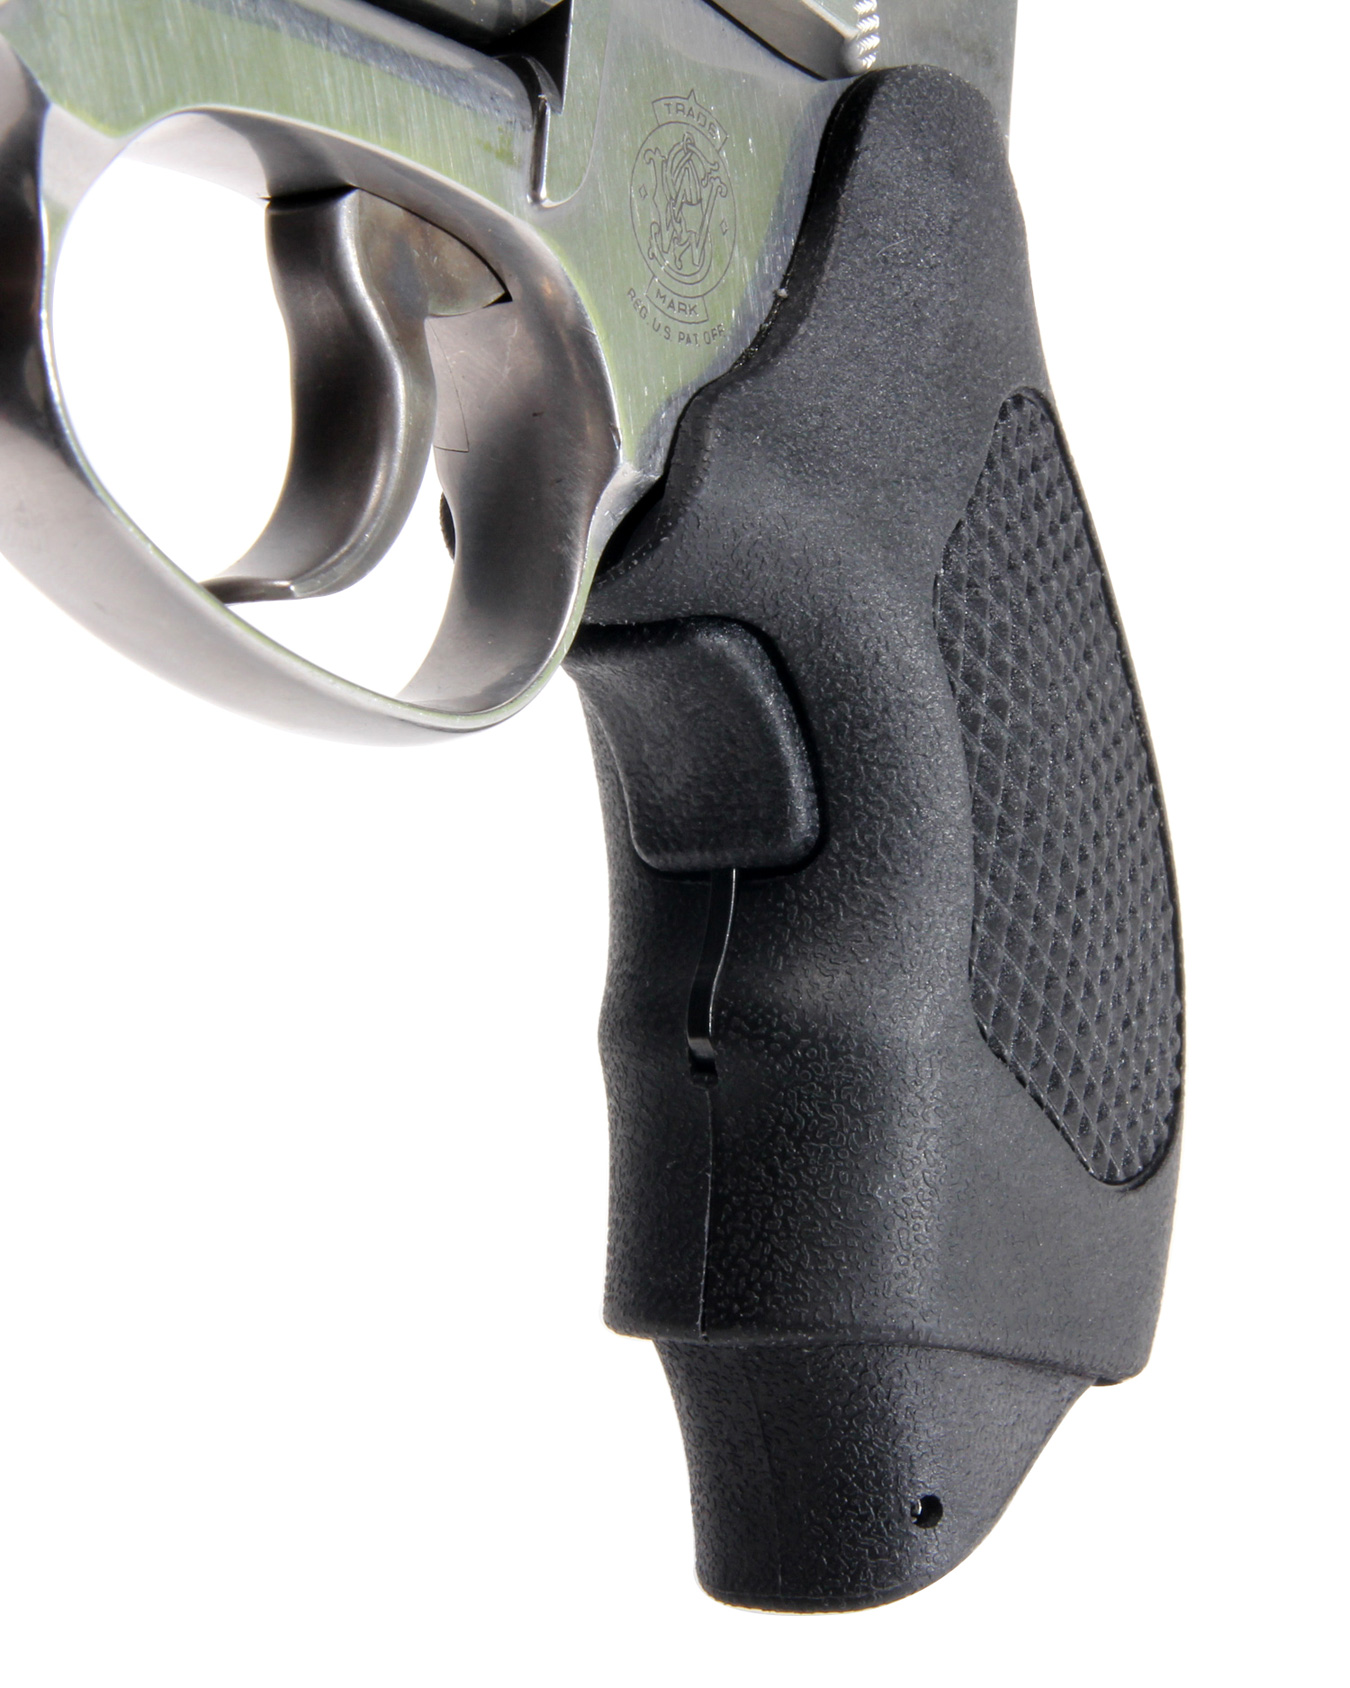 Pachmayr Guardian grip with finger extension extended on revolver